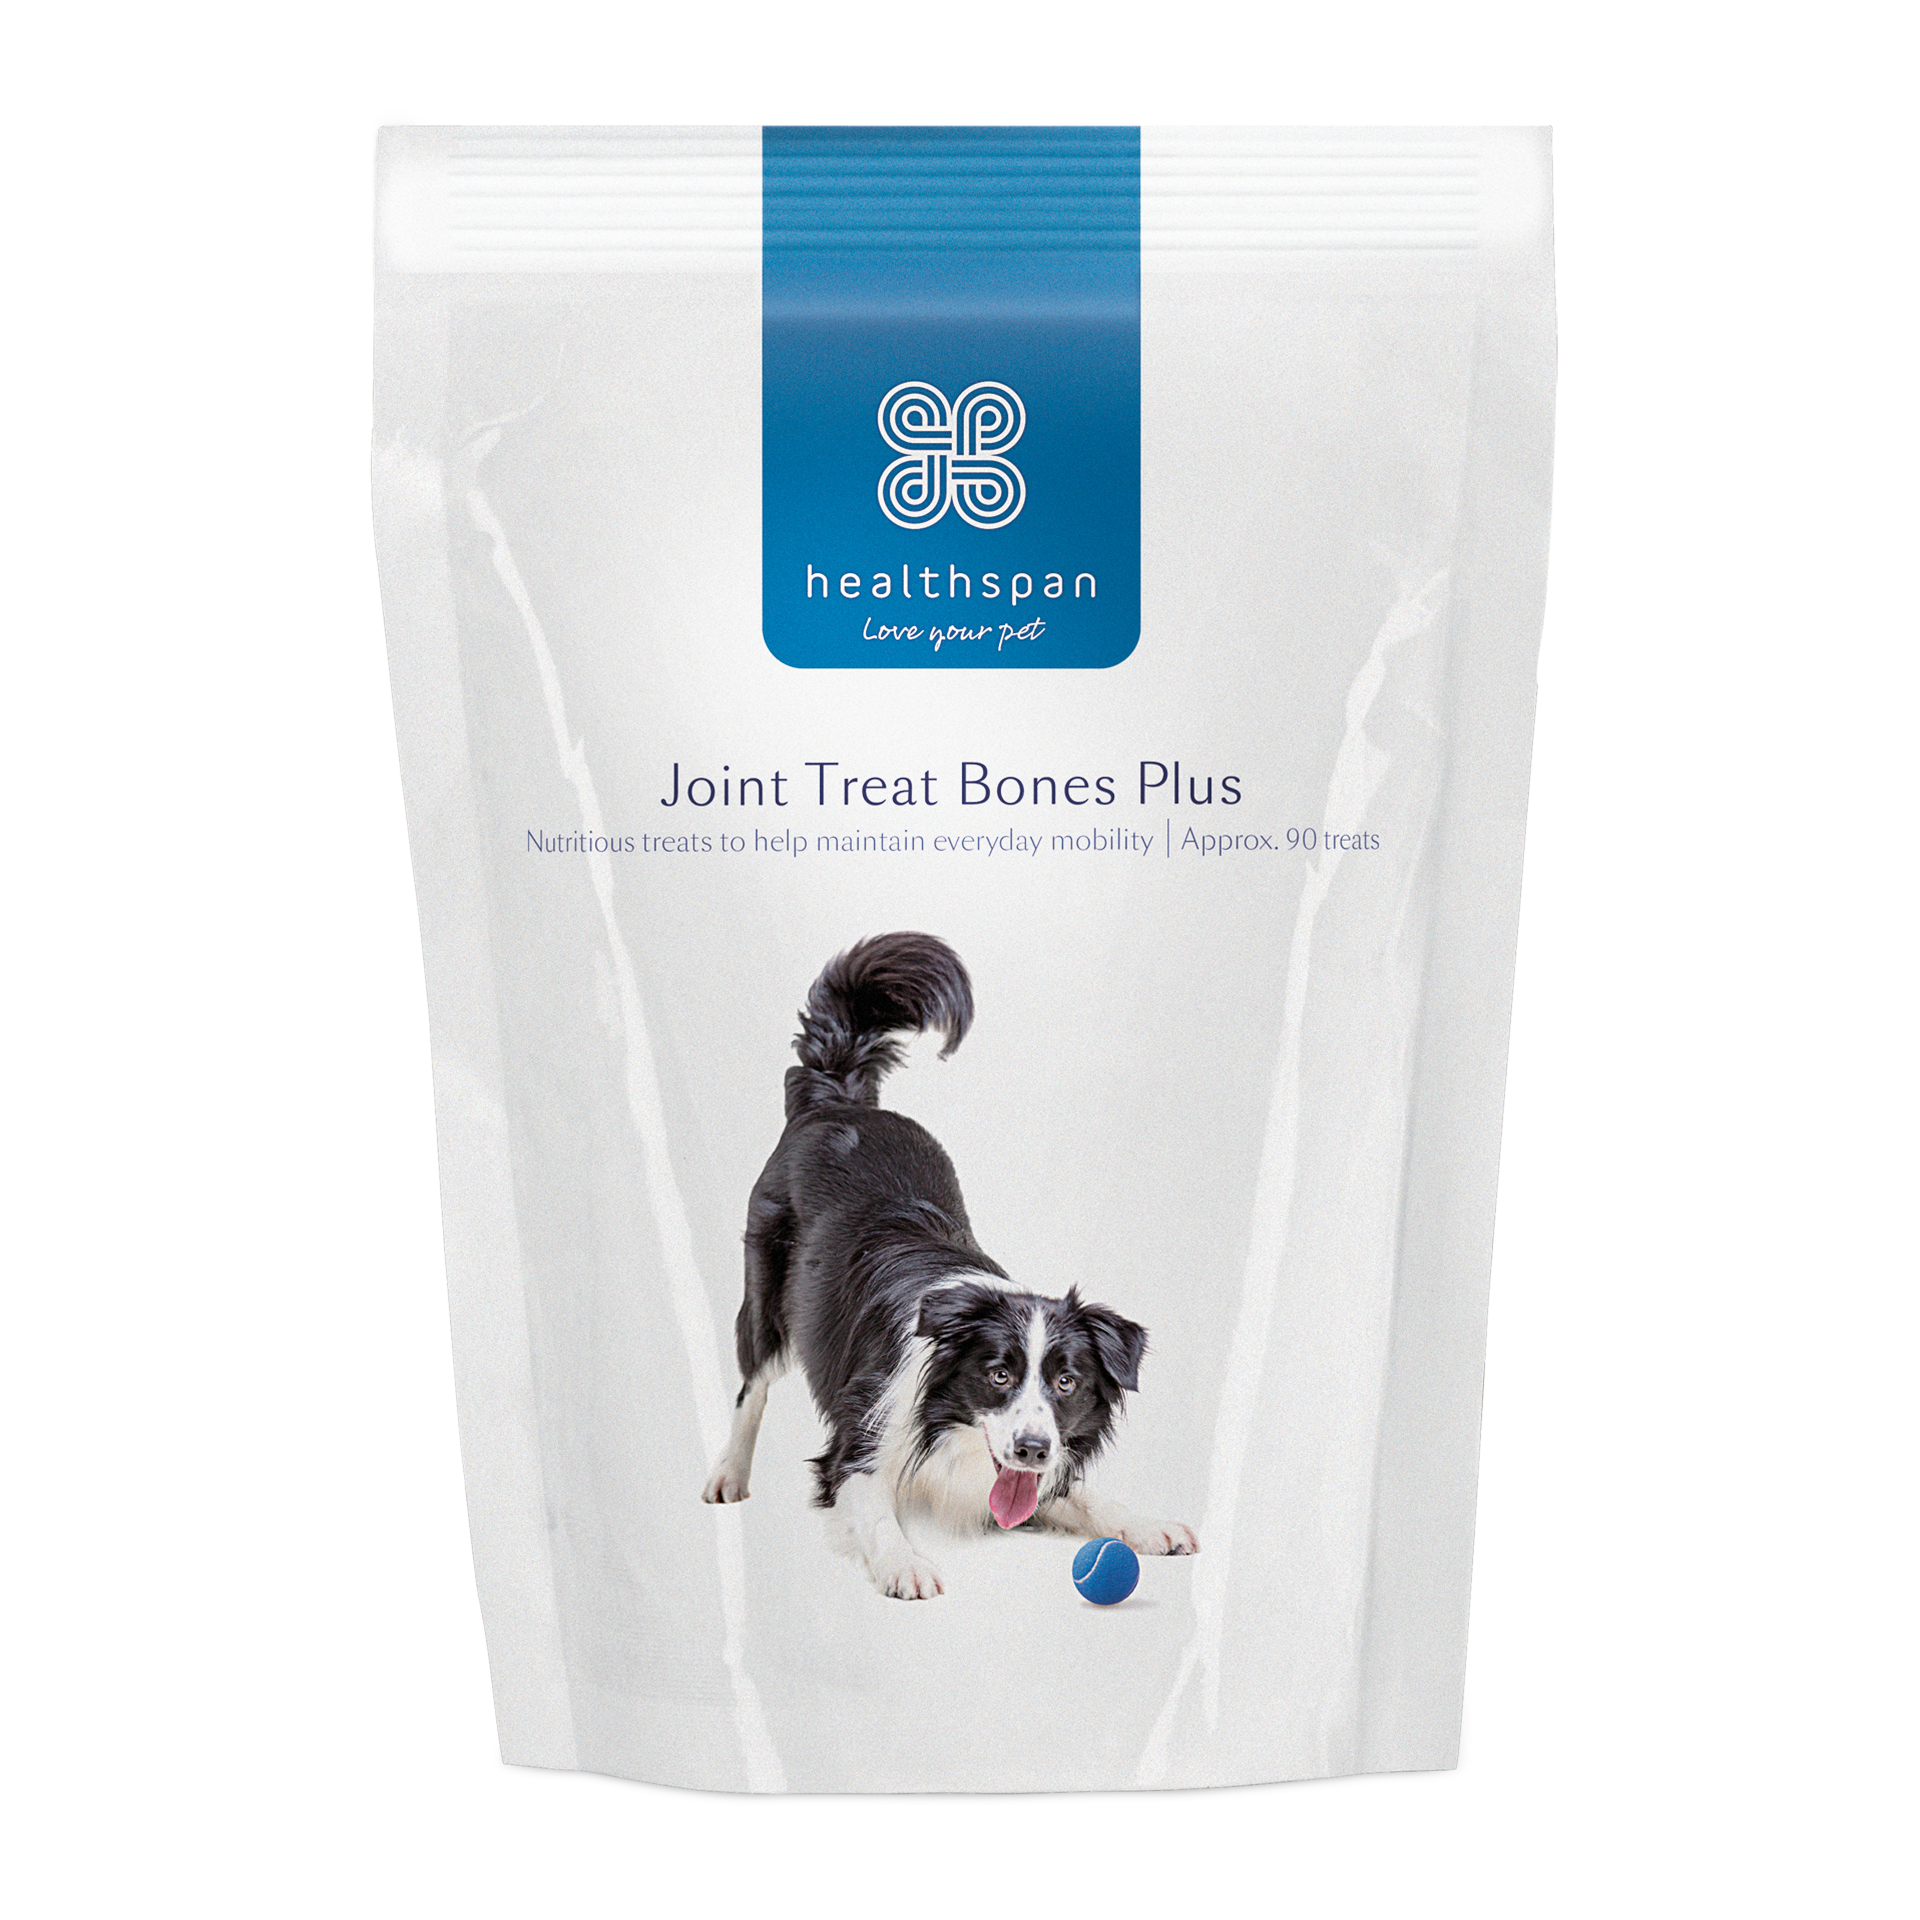 Joint Treats Bones Plus pouch